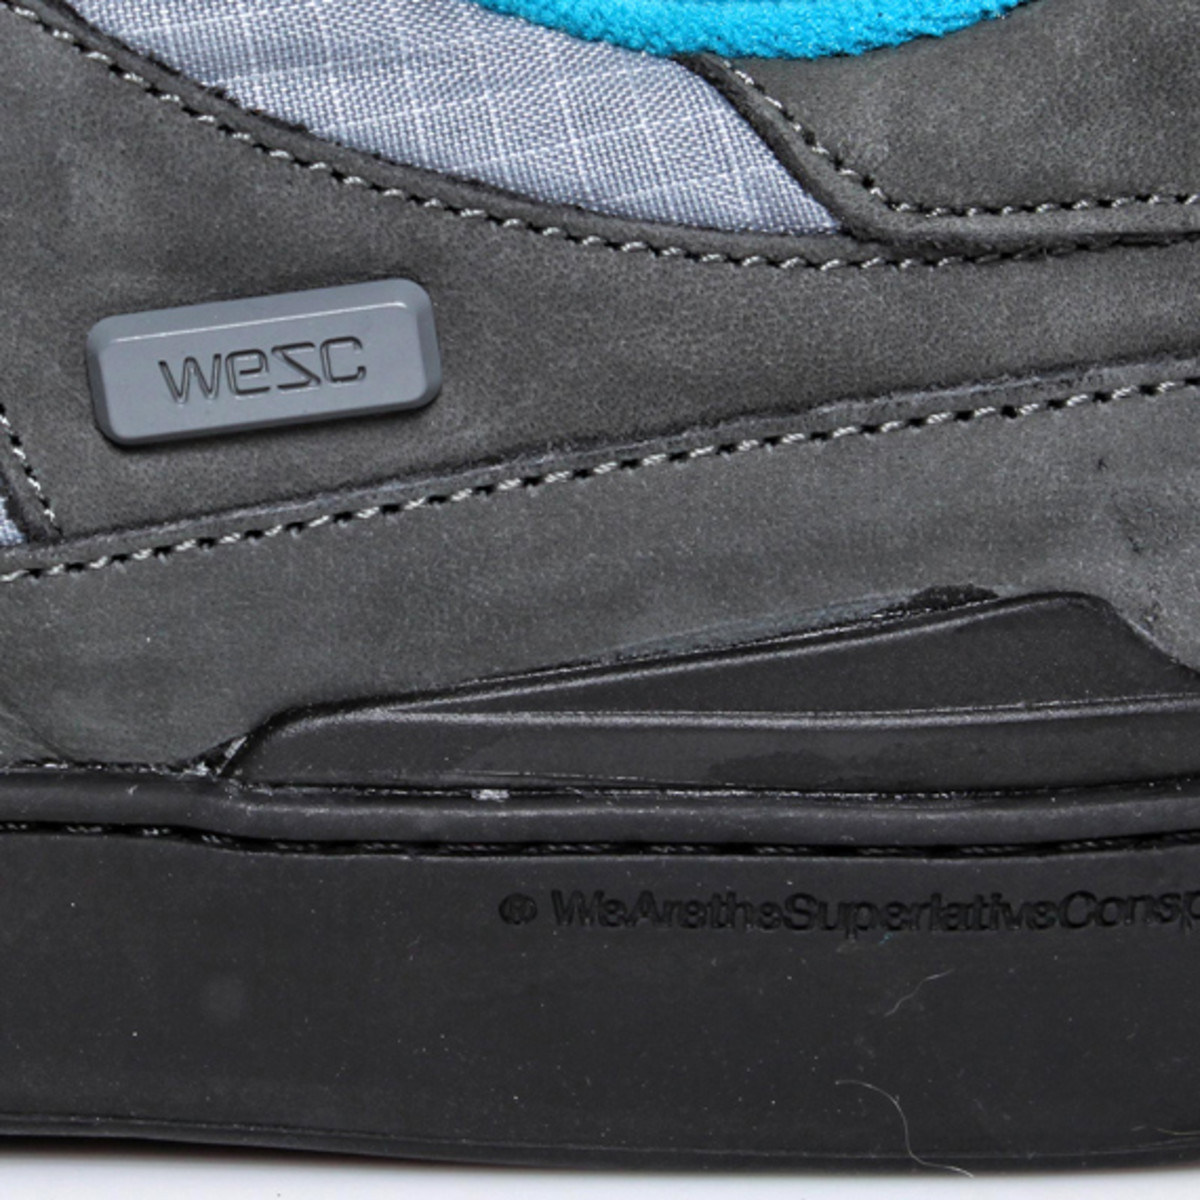 stash-wesc-emerson-stash-dark-shadow-06